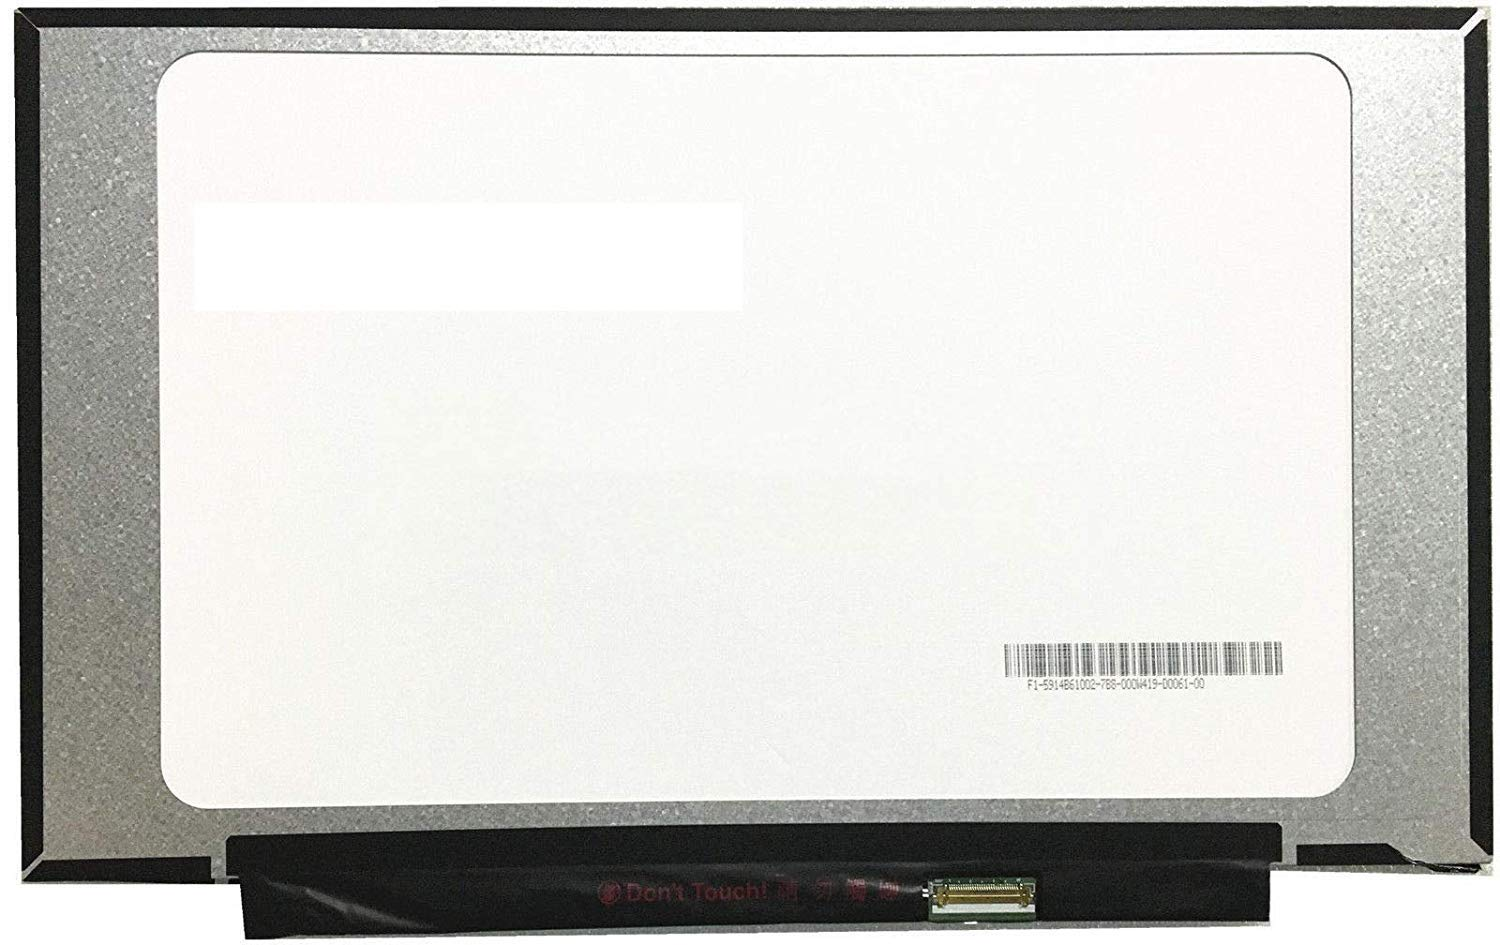 BRIGHTFOCAL New LCD Screen for Lenovo ThinkPad X1 Carbon 5th Gen 2017 20K4 20HR IPS FHD Full-HD 1080P WUXGA Slim LED LCD Screen Replacement Display by BRIGHTFOCAL (Image #2)